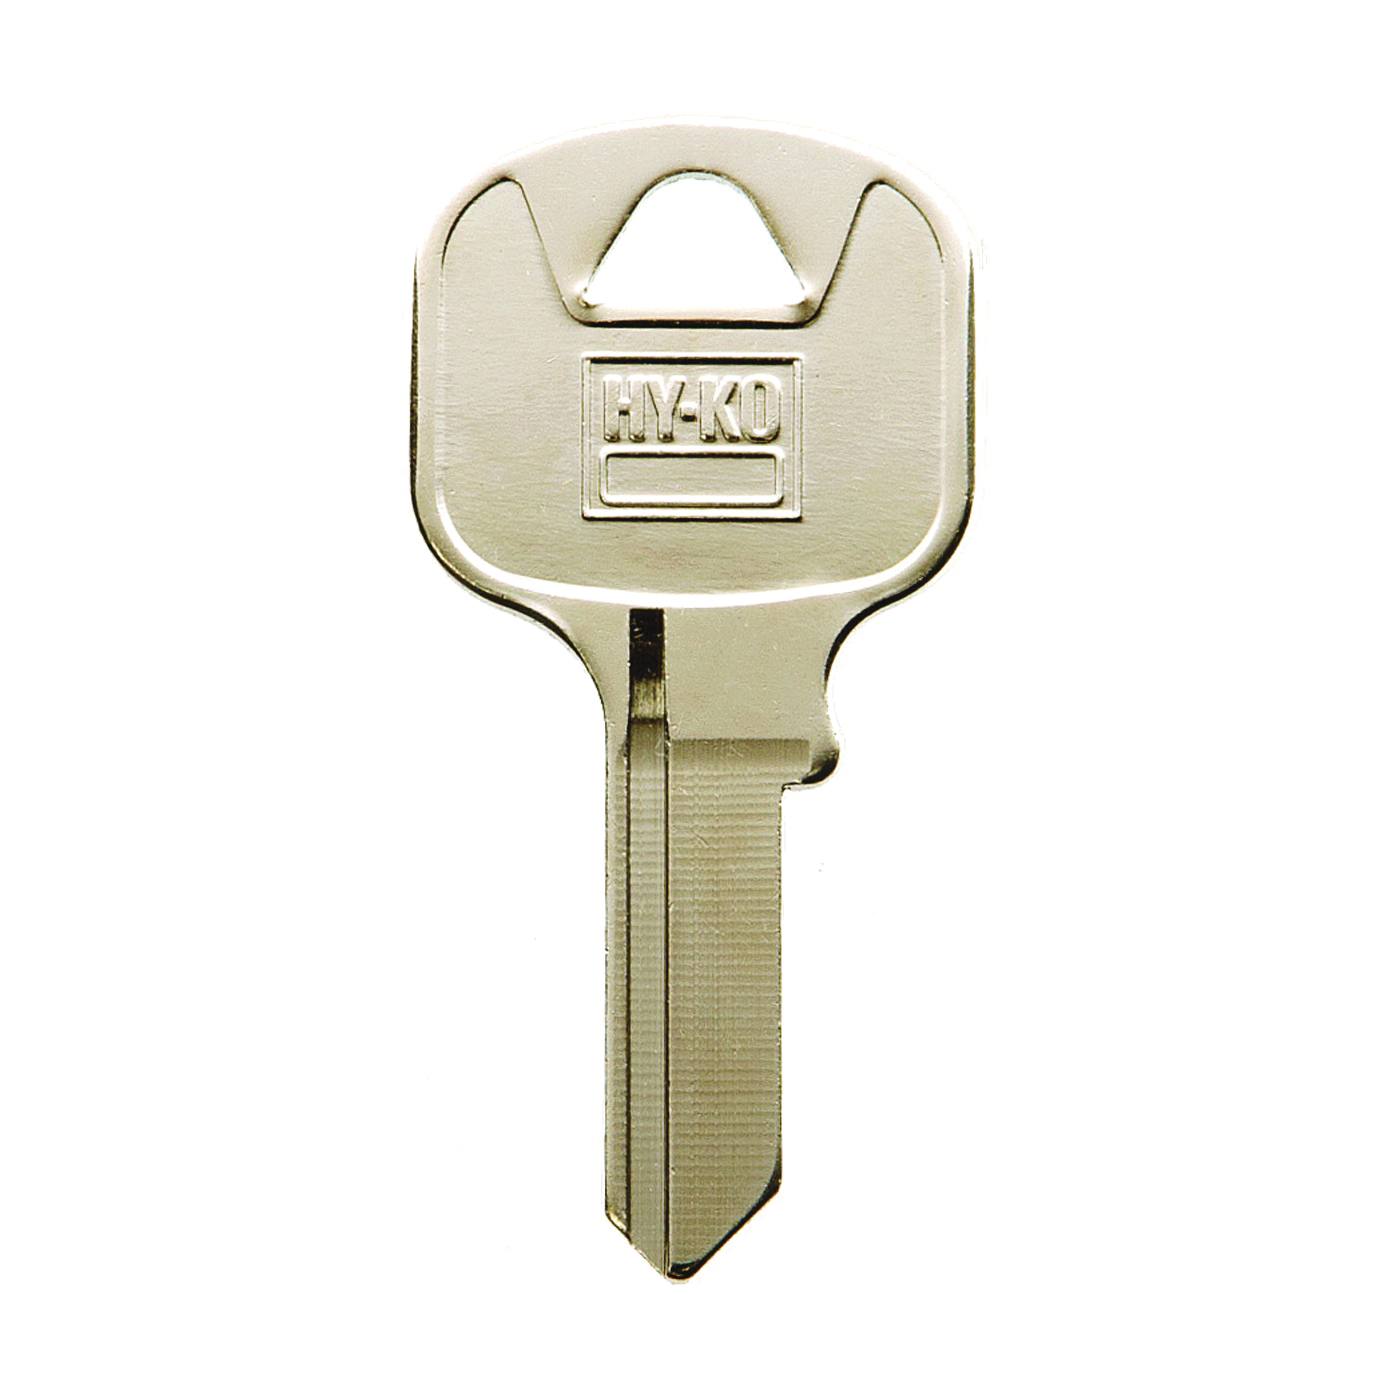 Picture of HY-KO 11010AB13 Key Blank, Brass, Nickel, For: Abus Cabinet, House Locks and Padlocks